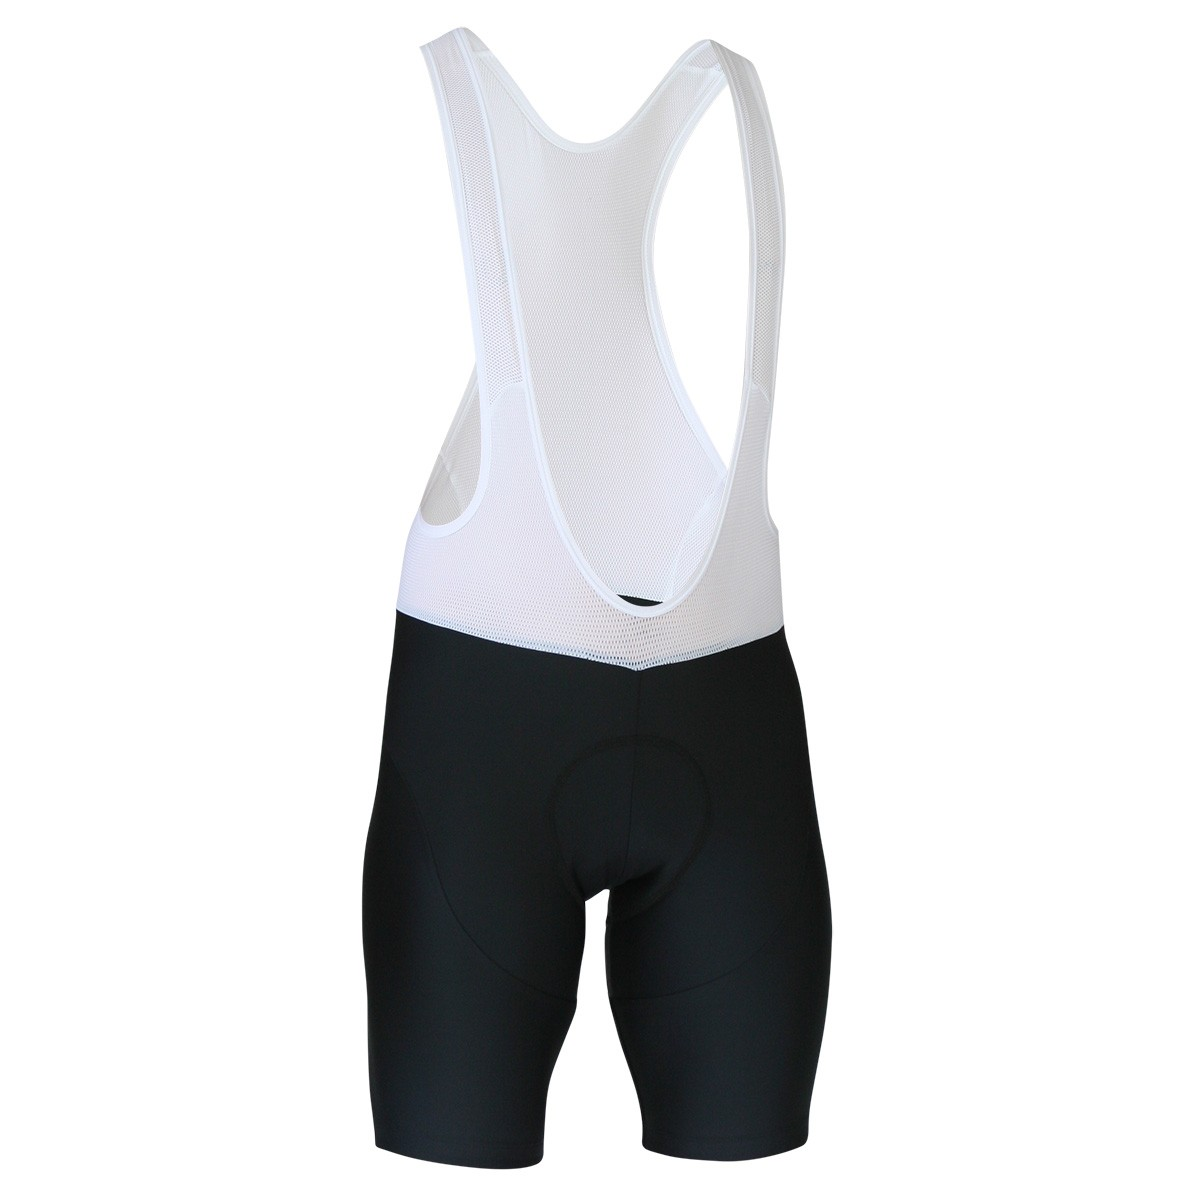 Impsport Black Sportive Bibshorts